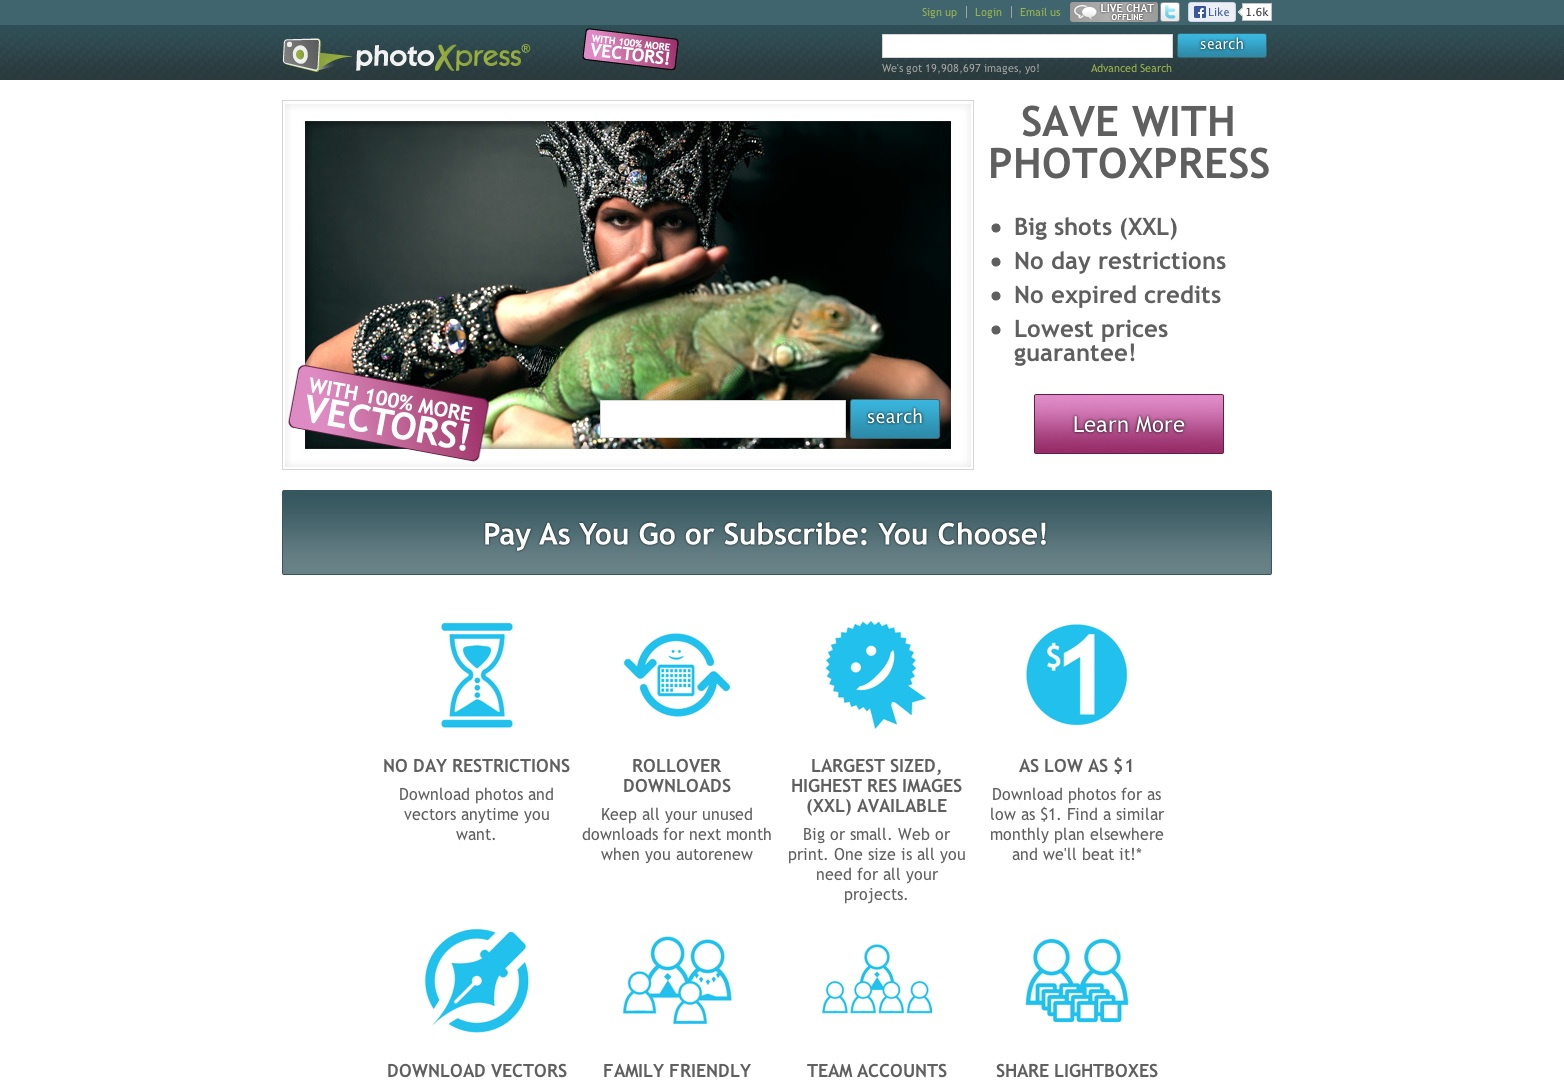 Stock Photos | Royalty Free Subscription Stock Photos | PhotoXpress